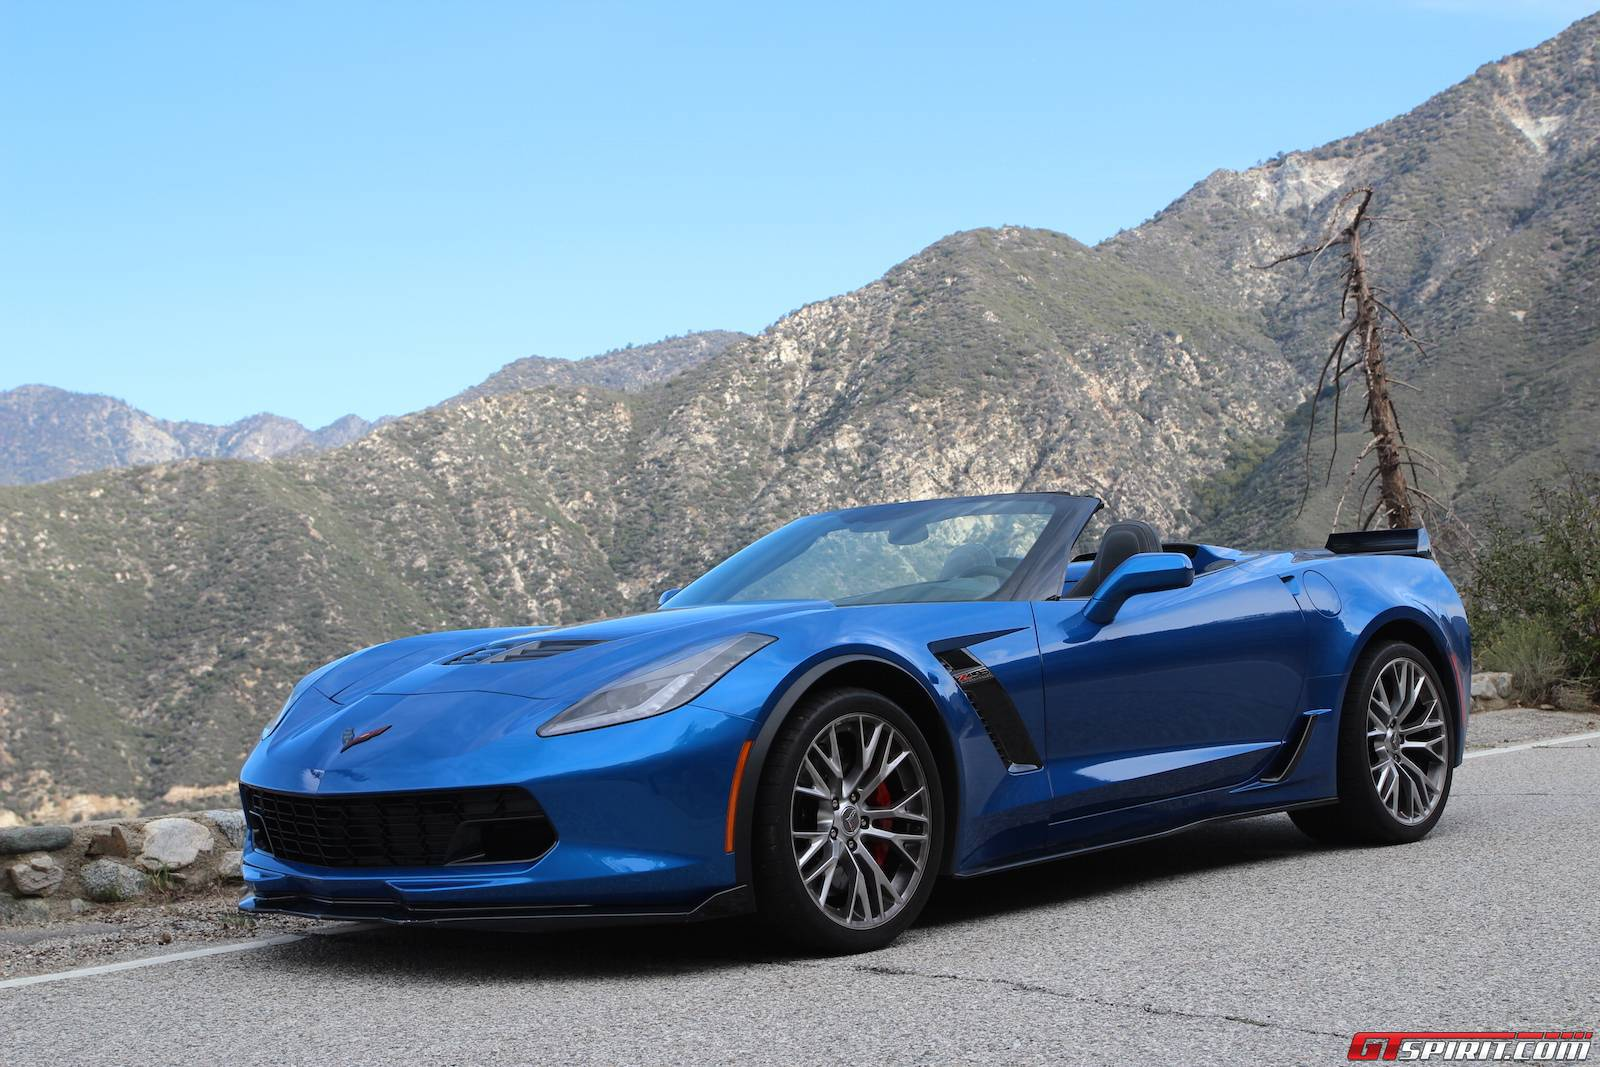 2015 chevrolet corvette z06 convertible review - gtspirit